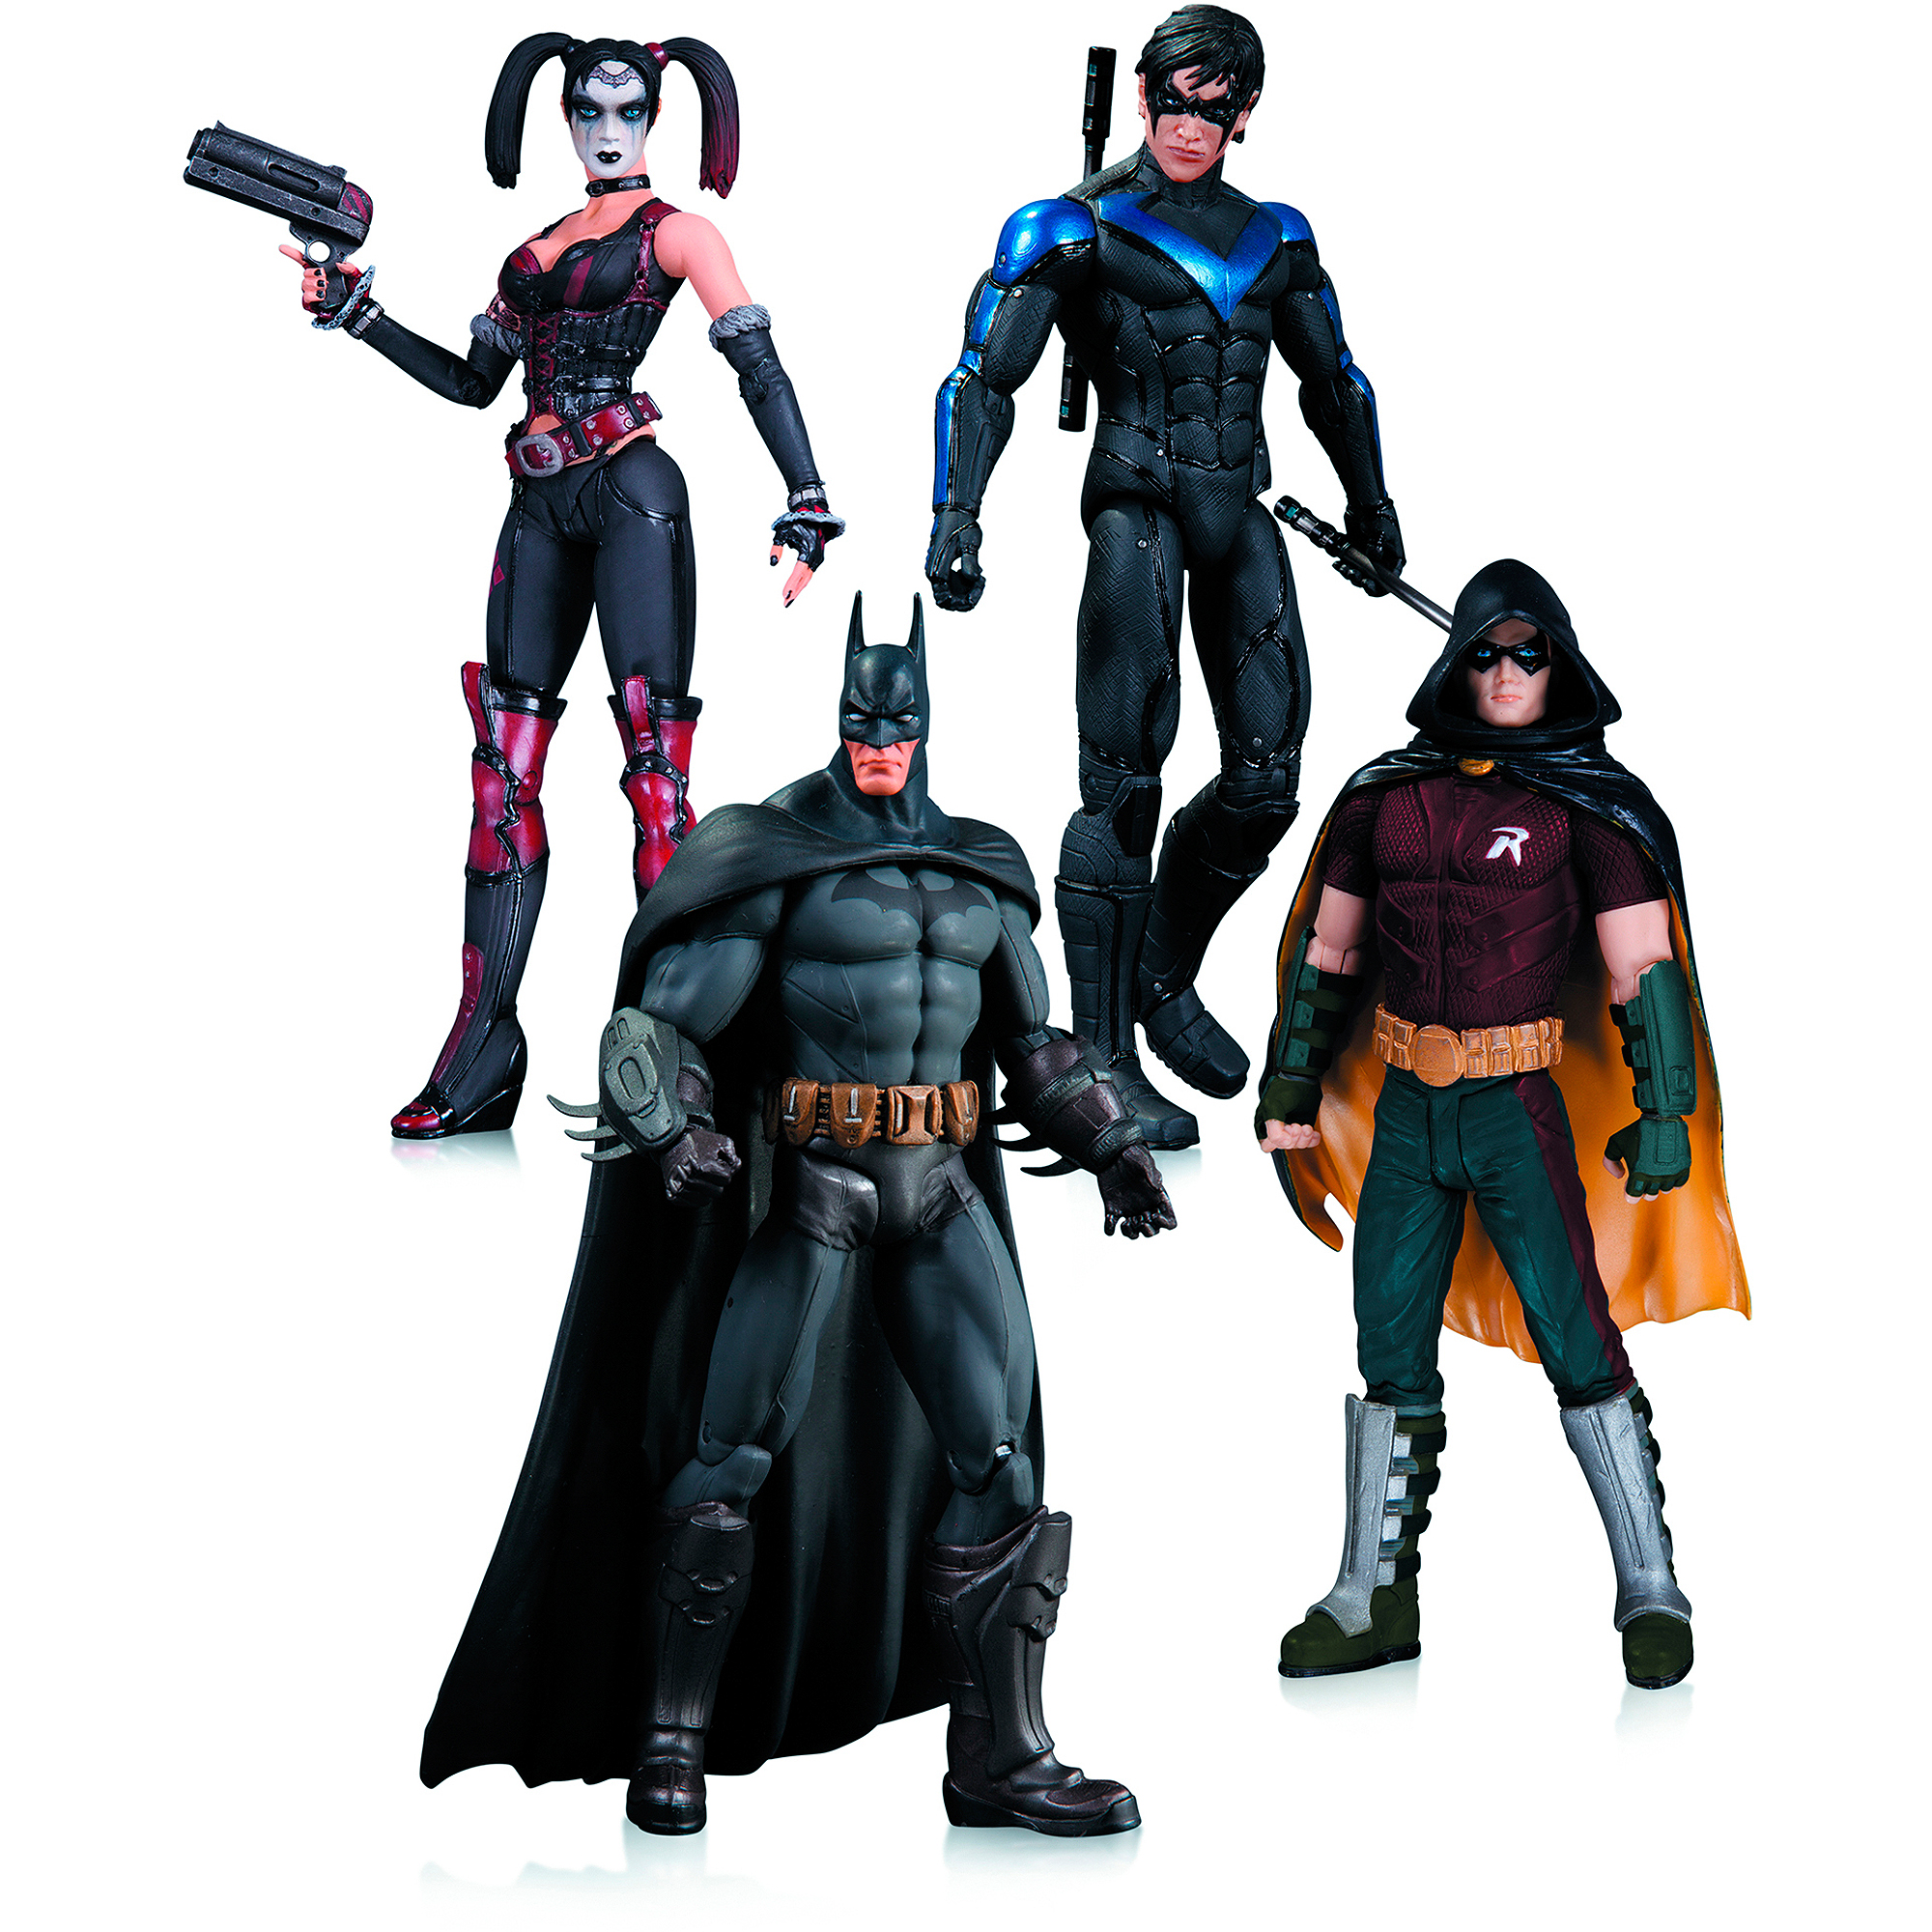 DC Comics Arkham City Action Figure Box Set, Harley Quinn, Batman, Nightwing and Robin by Generic